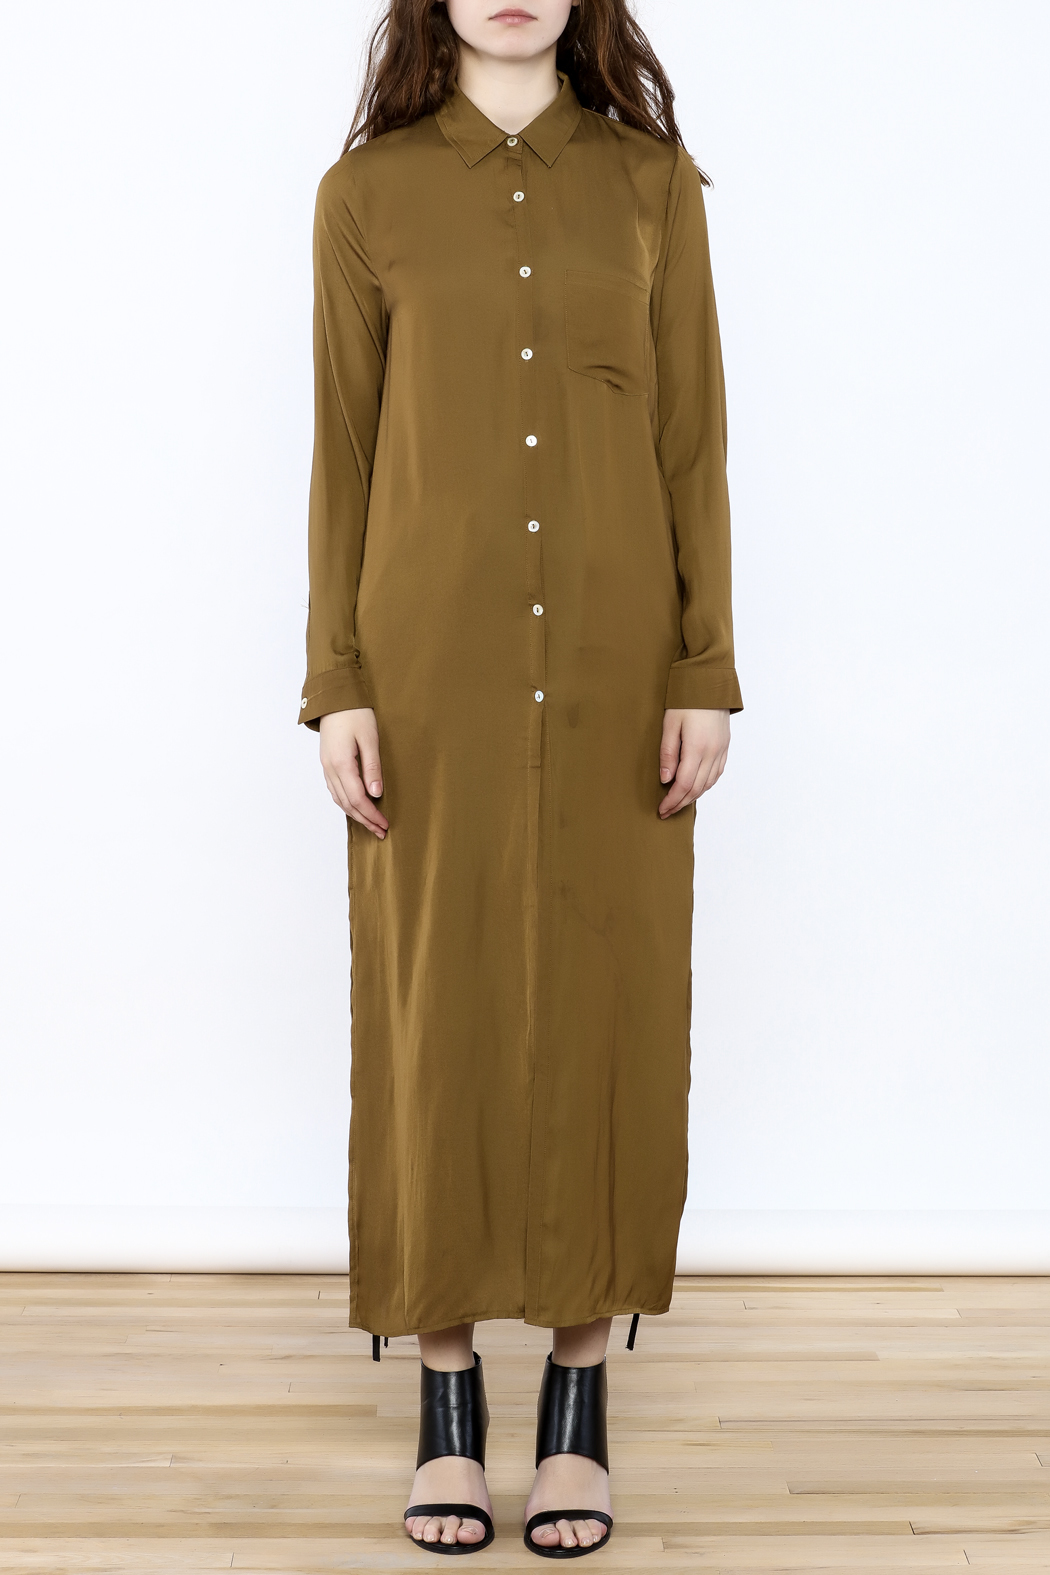 7dd0a9e3 Honey Punch Olive Button-Down Maxi Dress from New York by Dor L'Dor ...